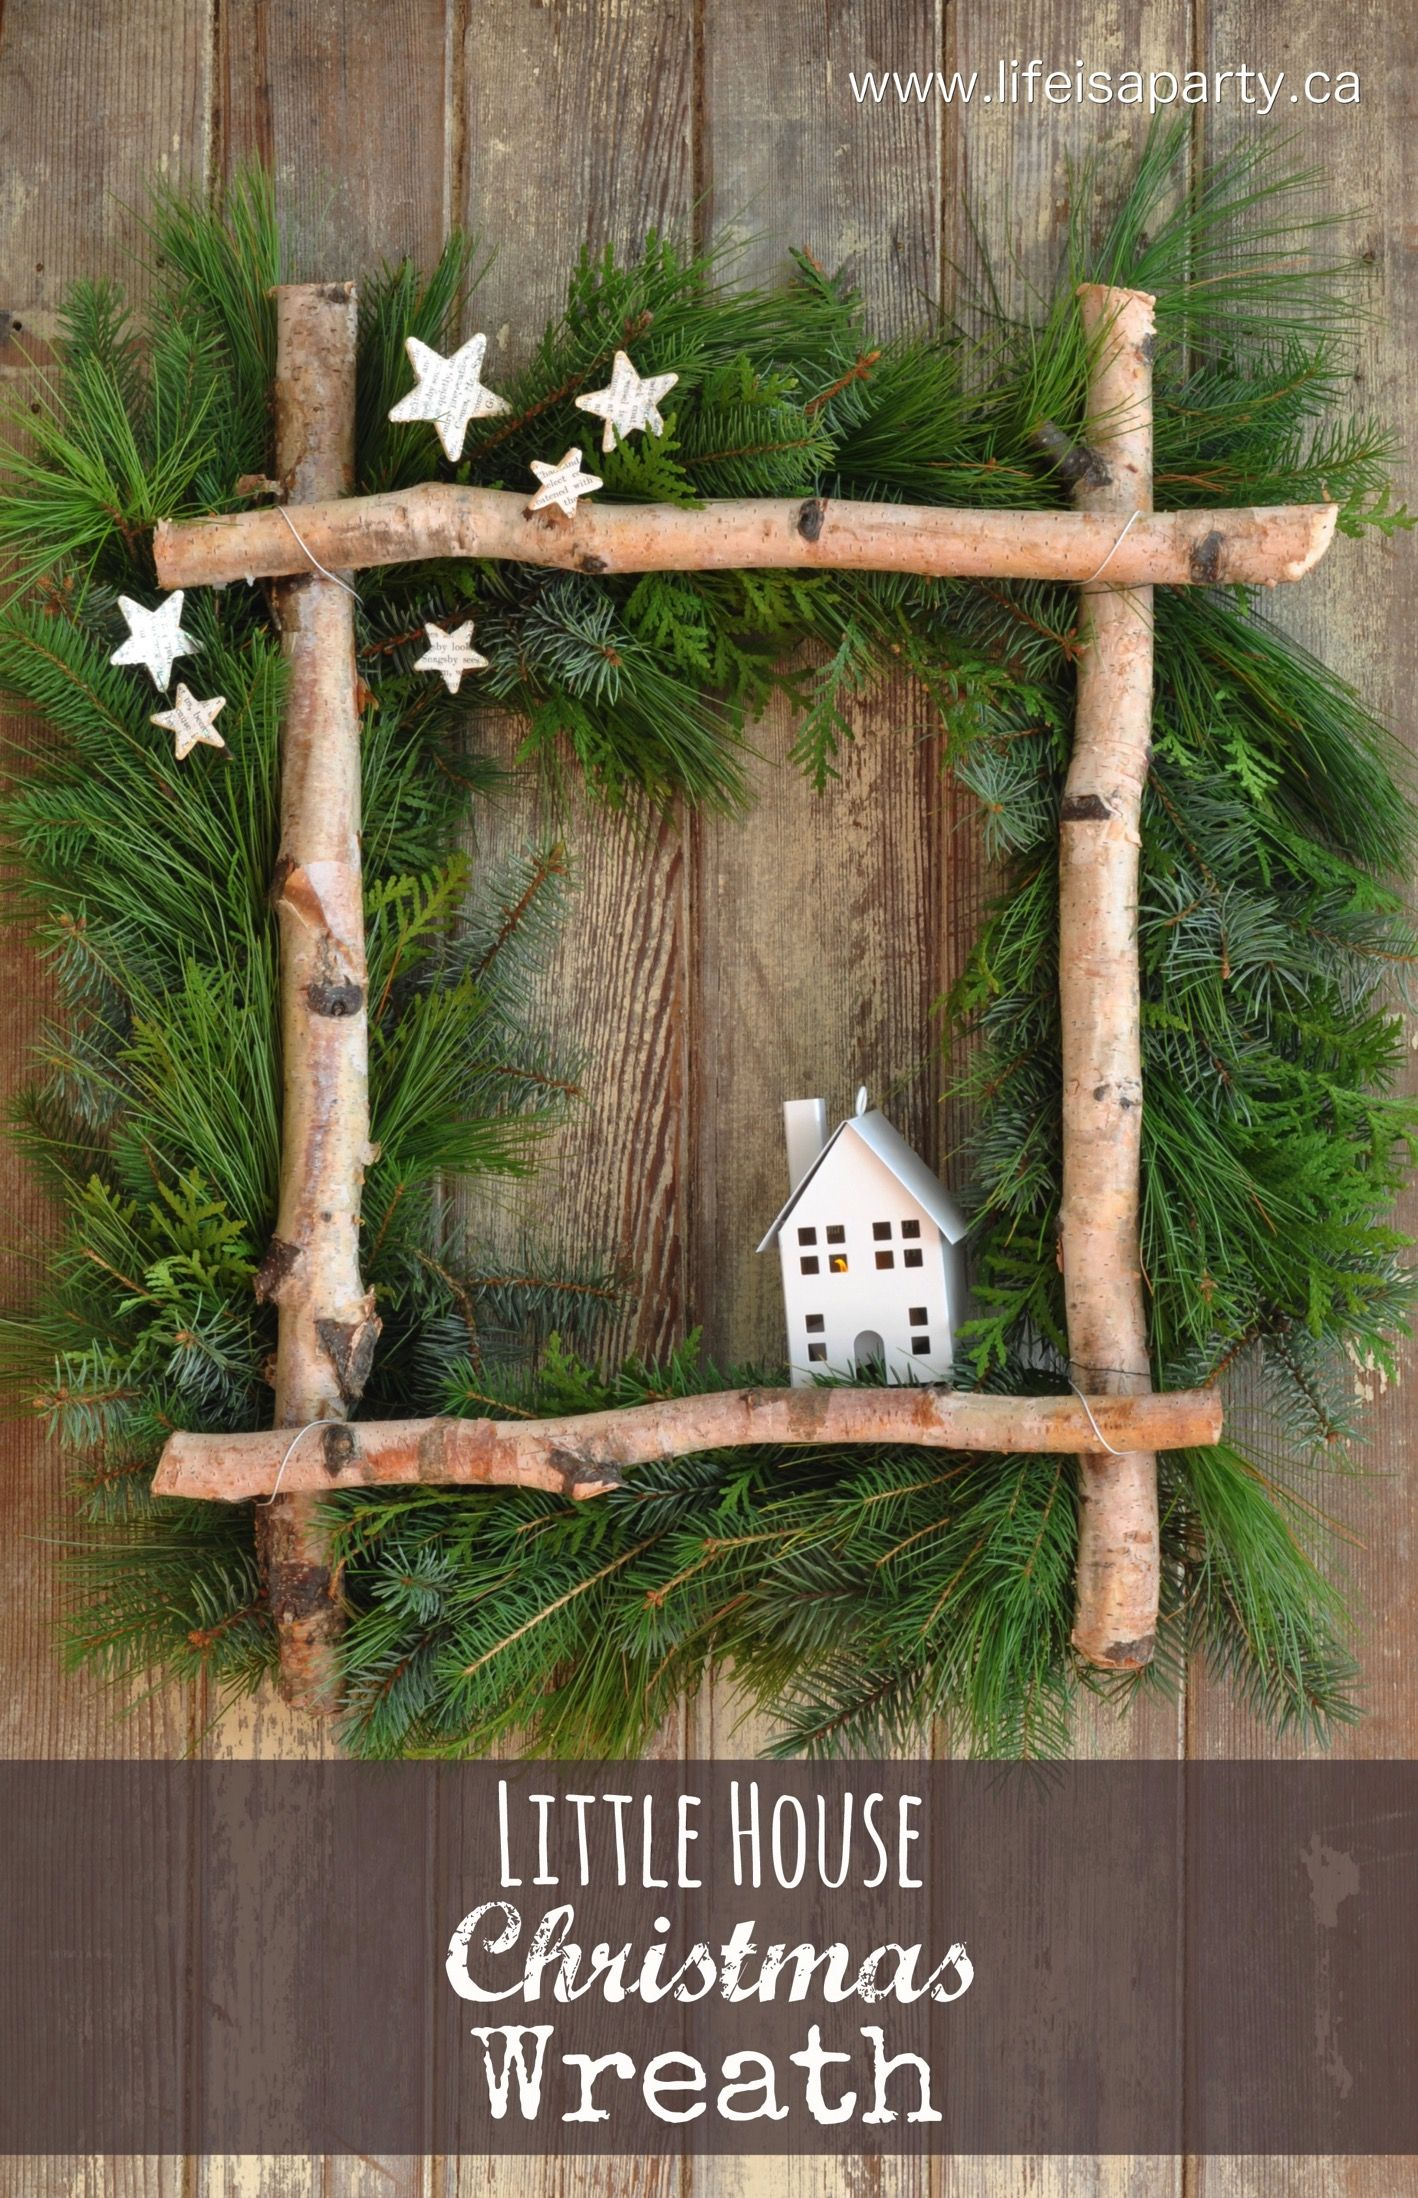 Little House Christmas Wreath full tutorial to make your own wreath